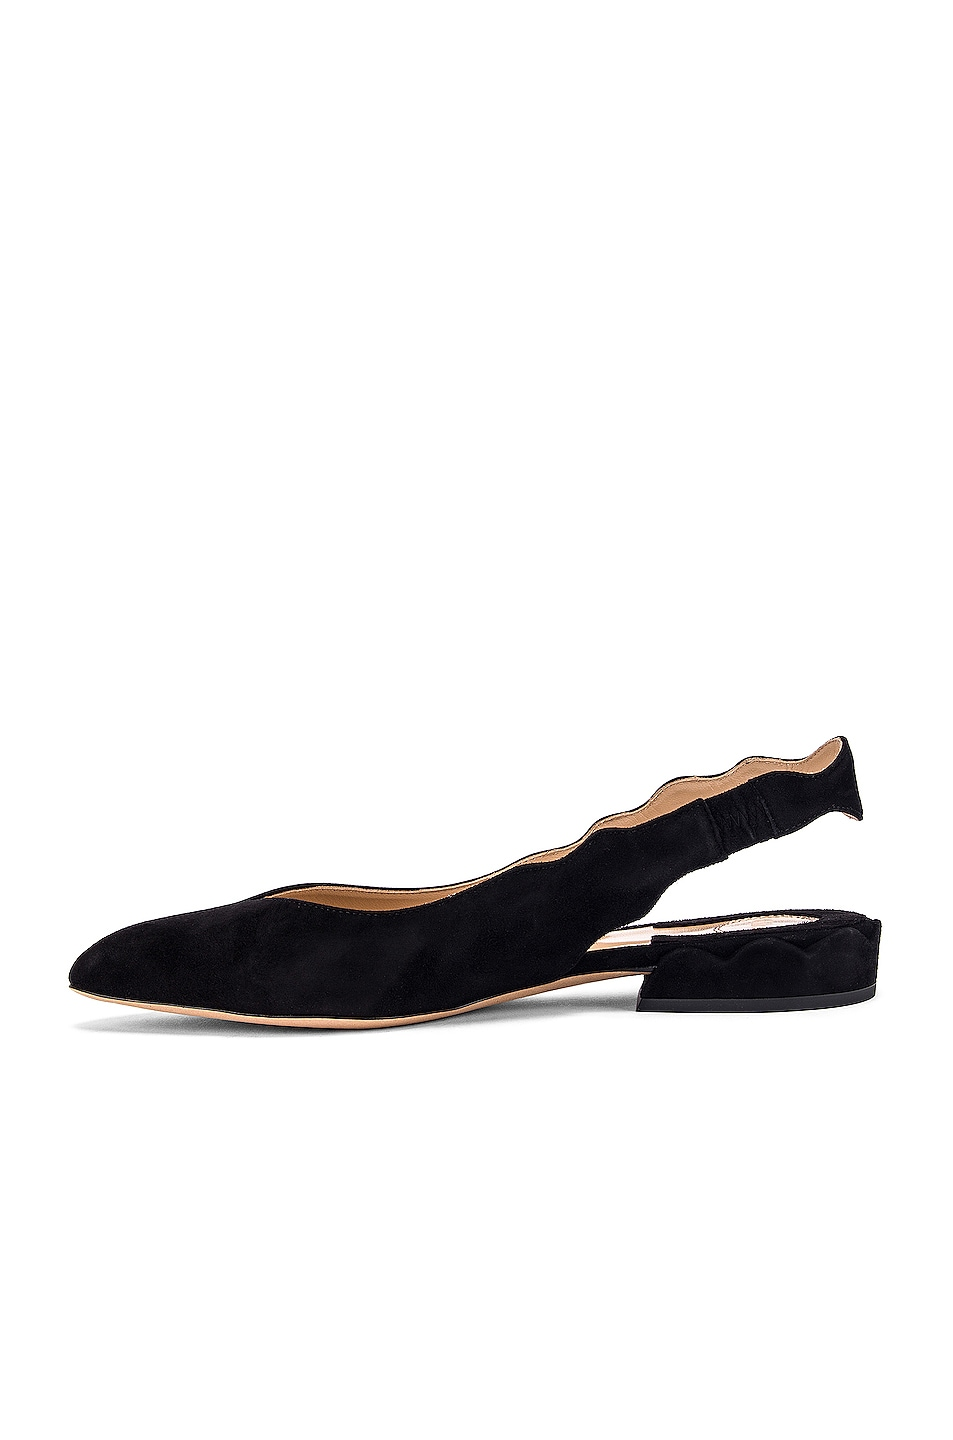 Image 5 of Chloe Laurena Slingback Flats in Black